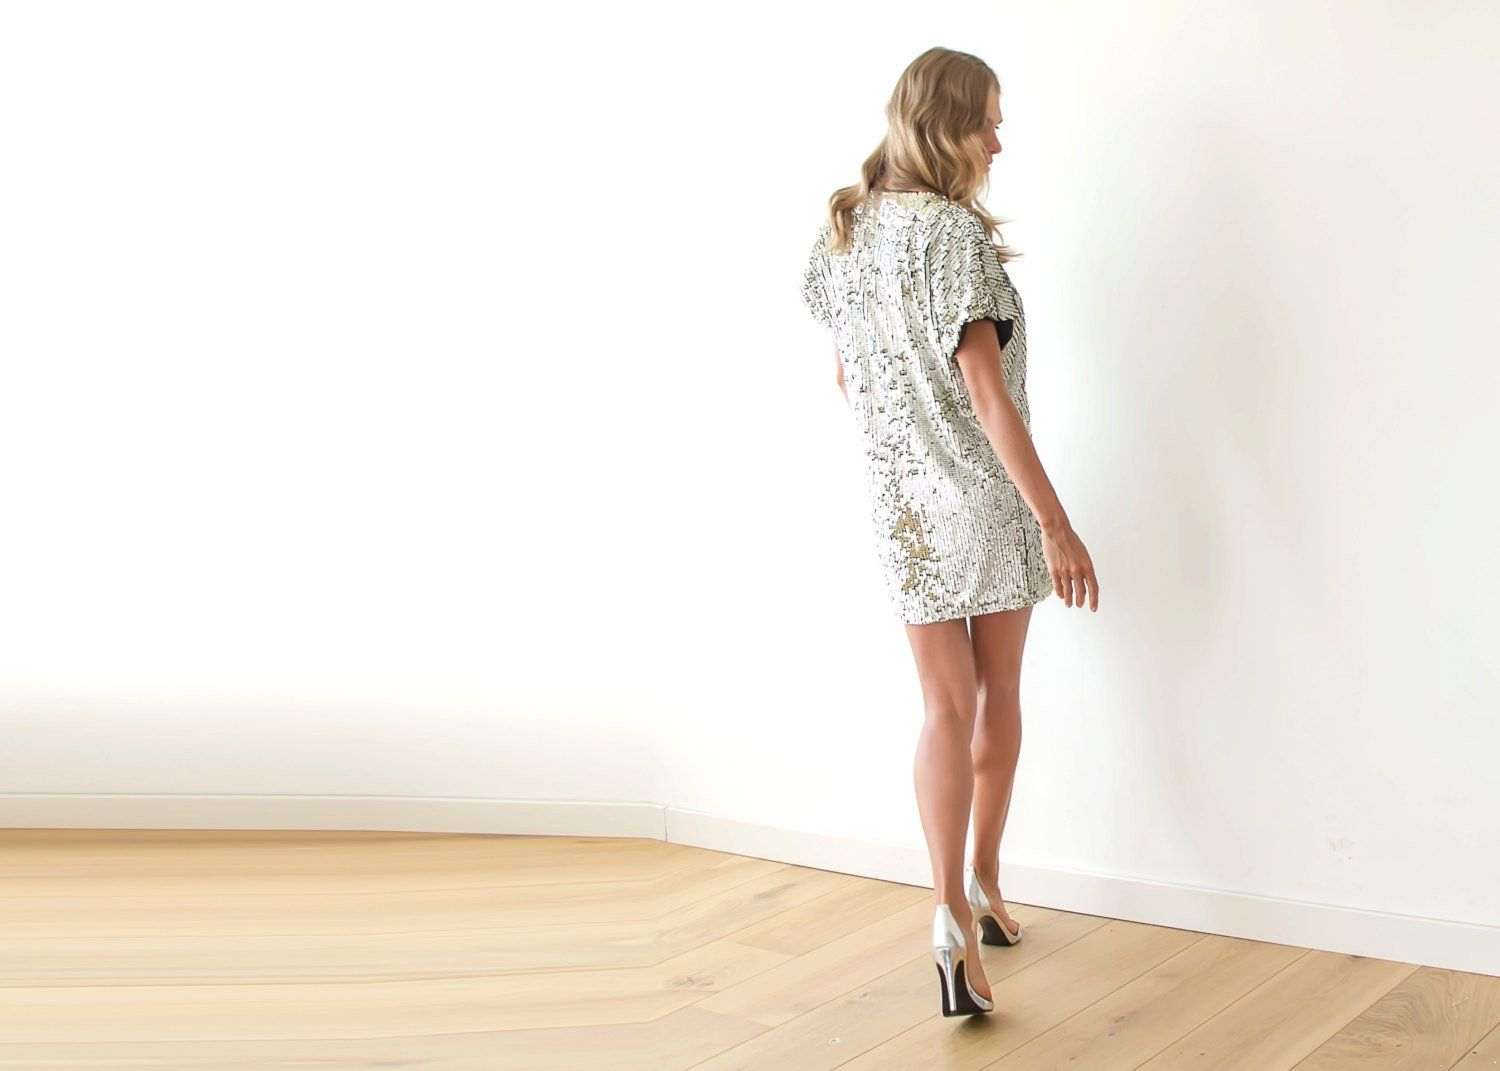 Sparkling Silver Sequin Mini Dress 1103 - Blushfashion